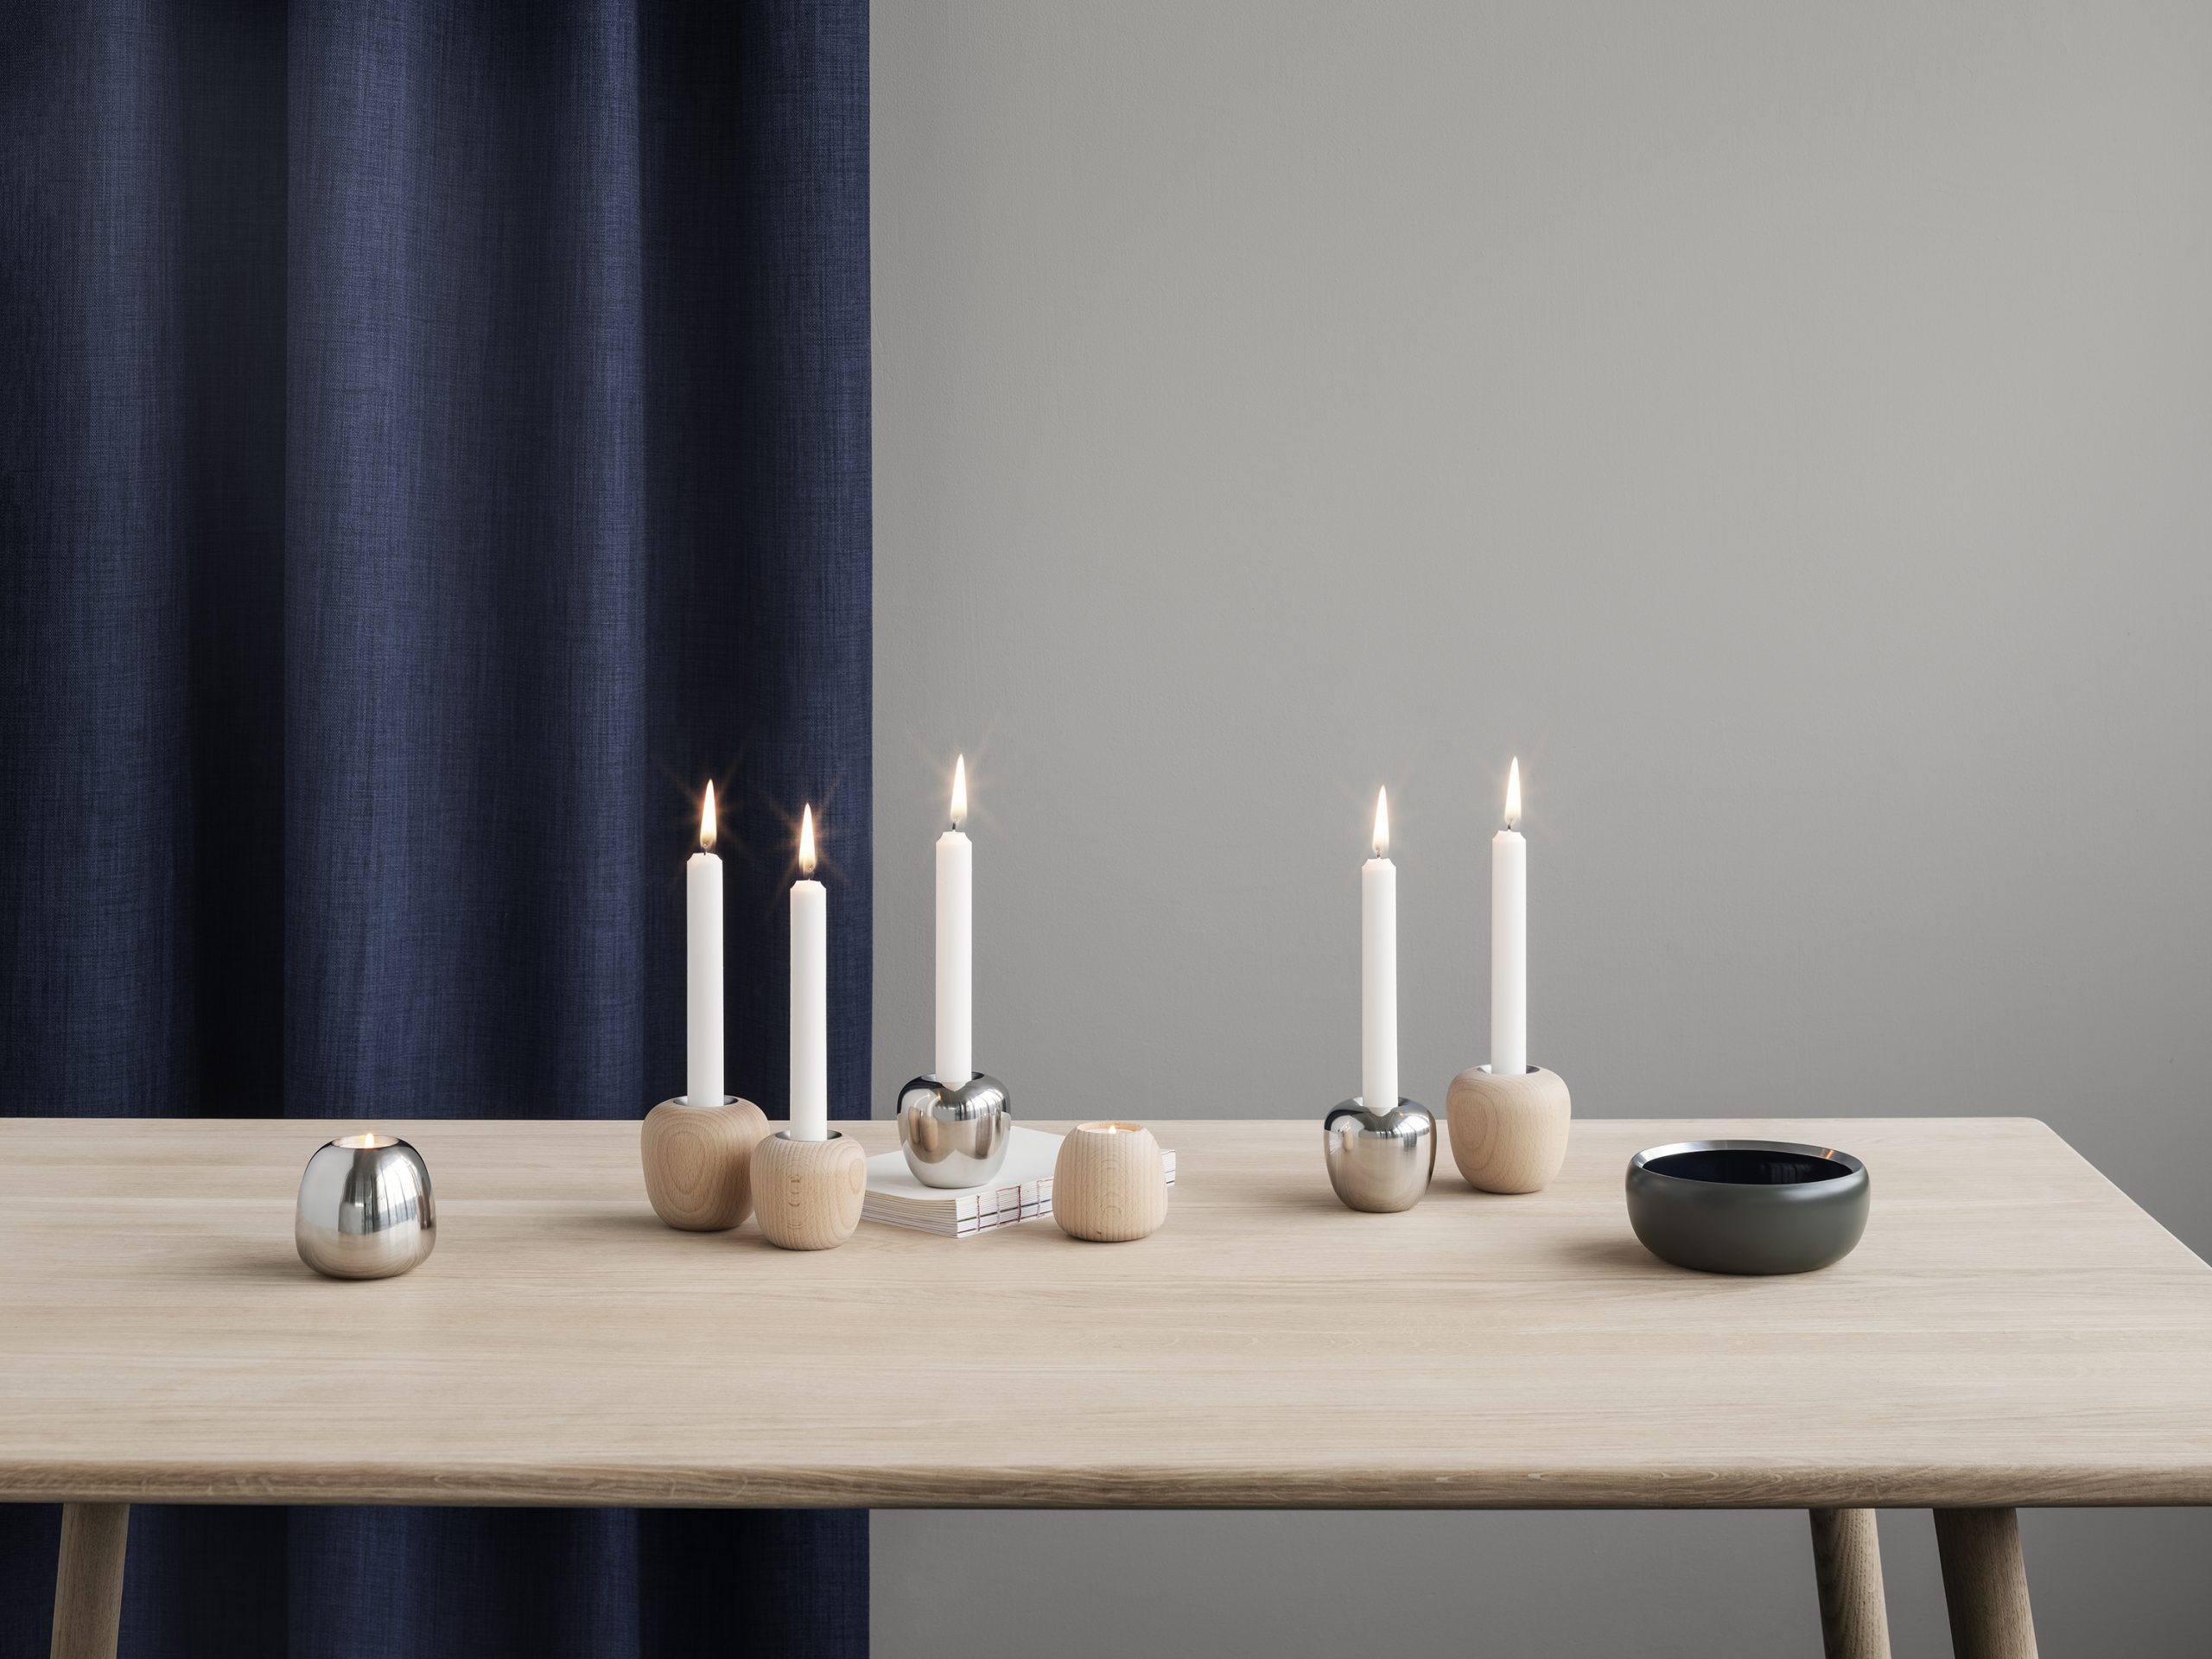 Ora bowls and candle holders by Debiasi Sandri for Stelton